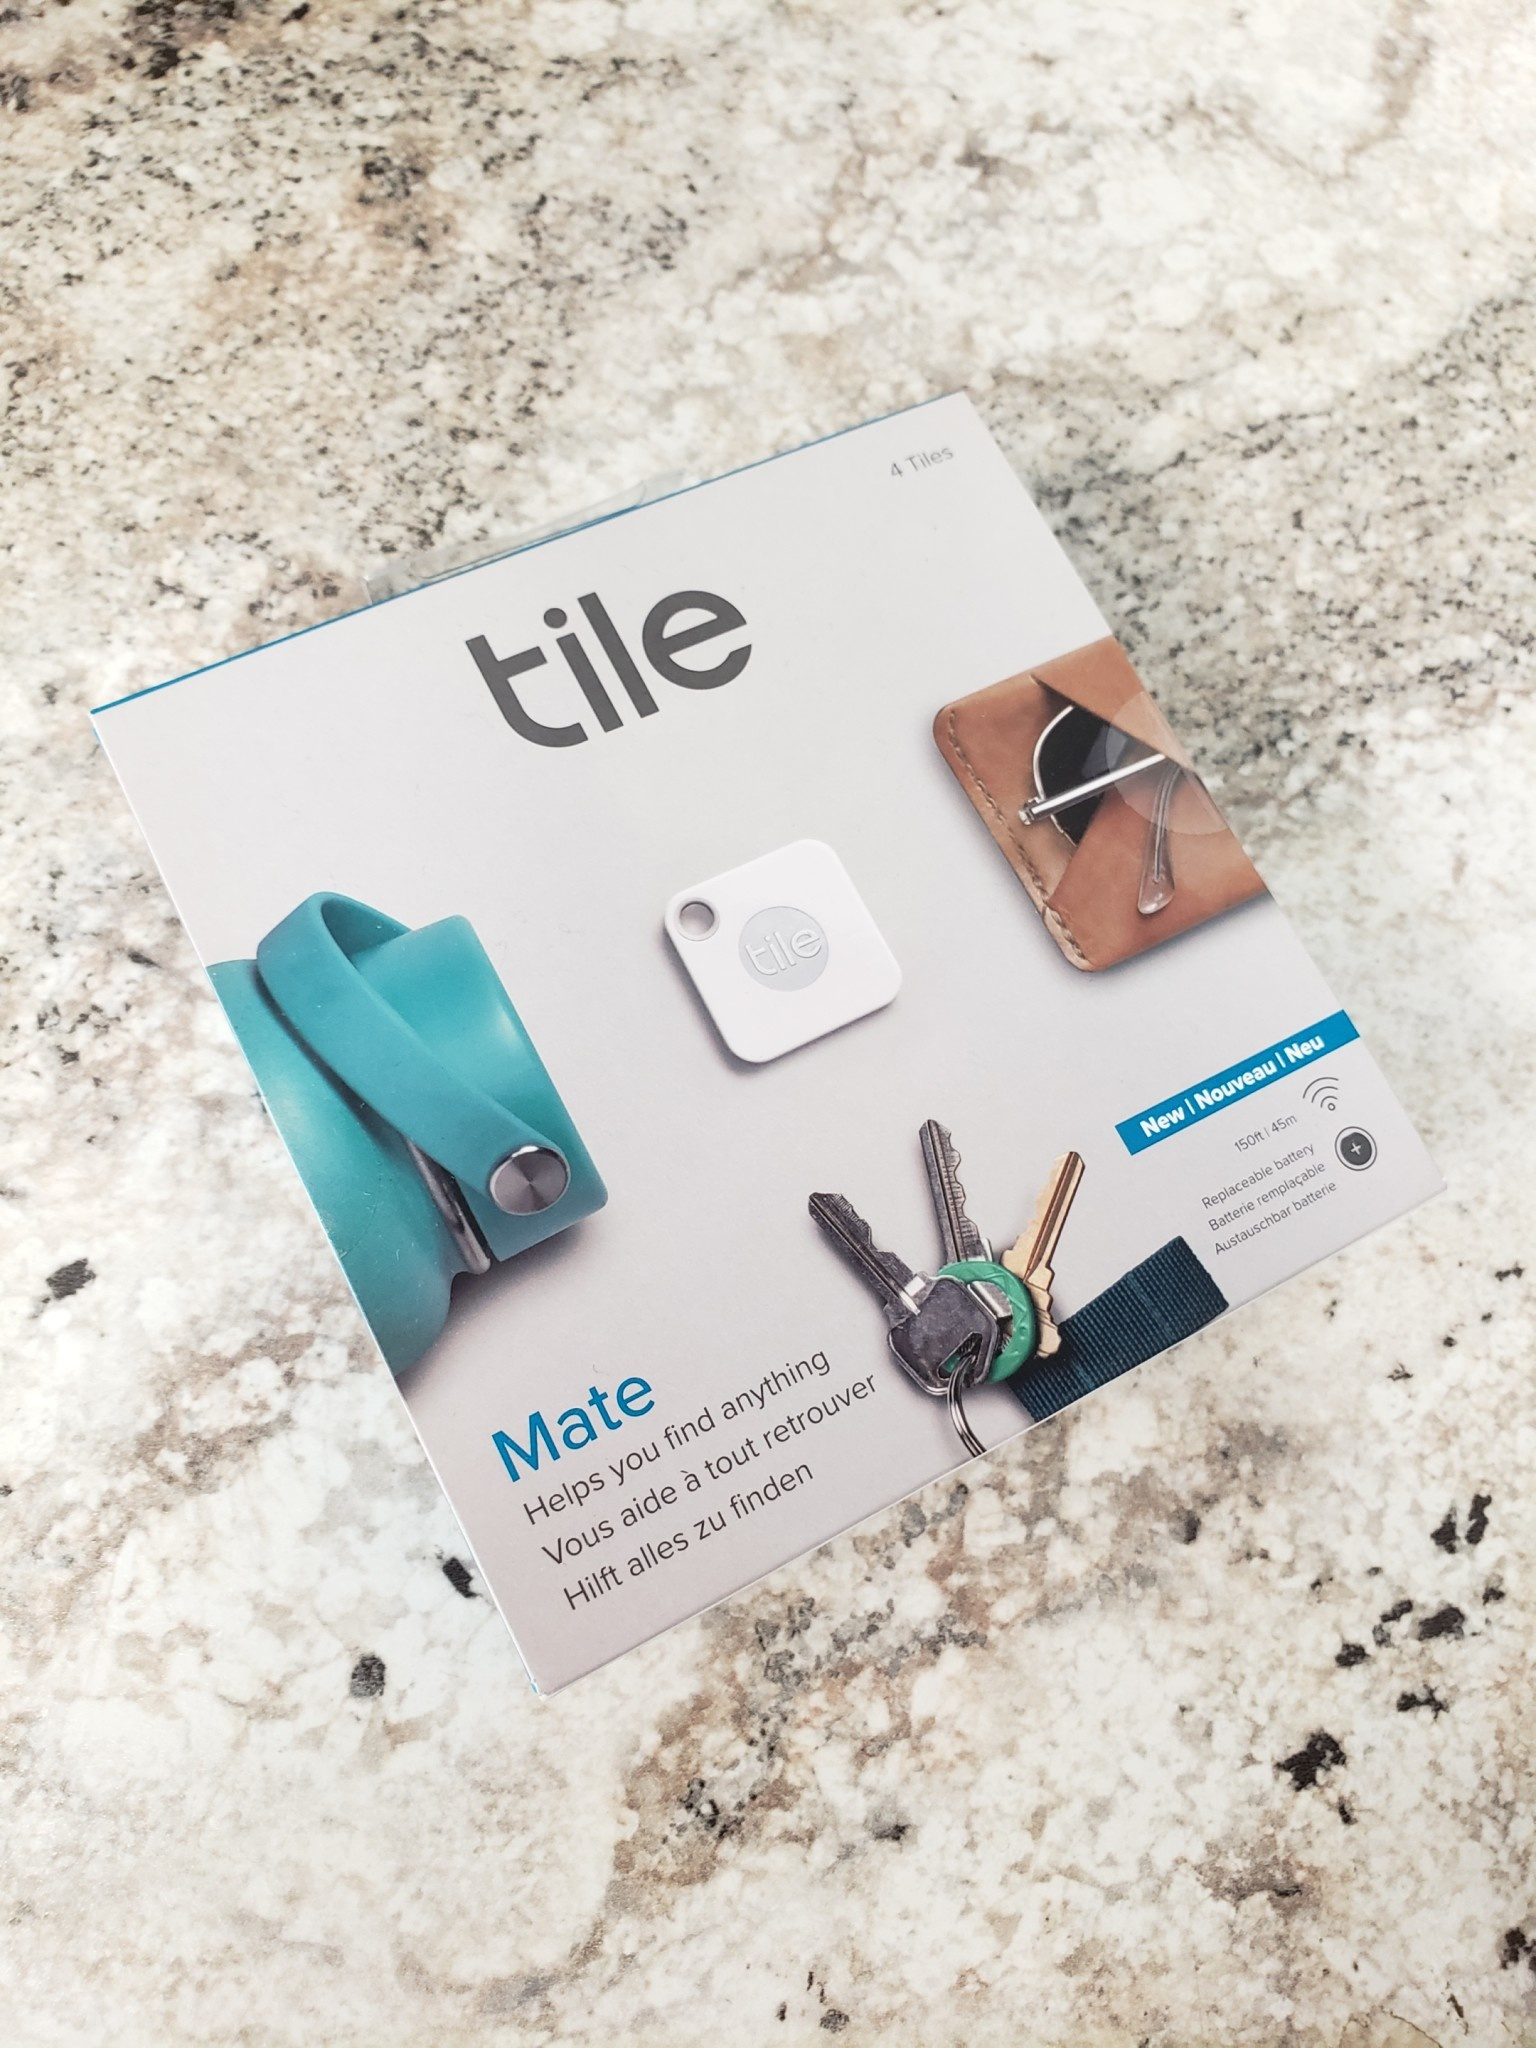 Tile Mate Device Tracker - 4 Pack - New